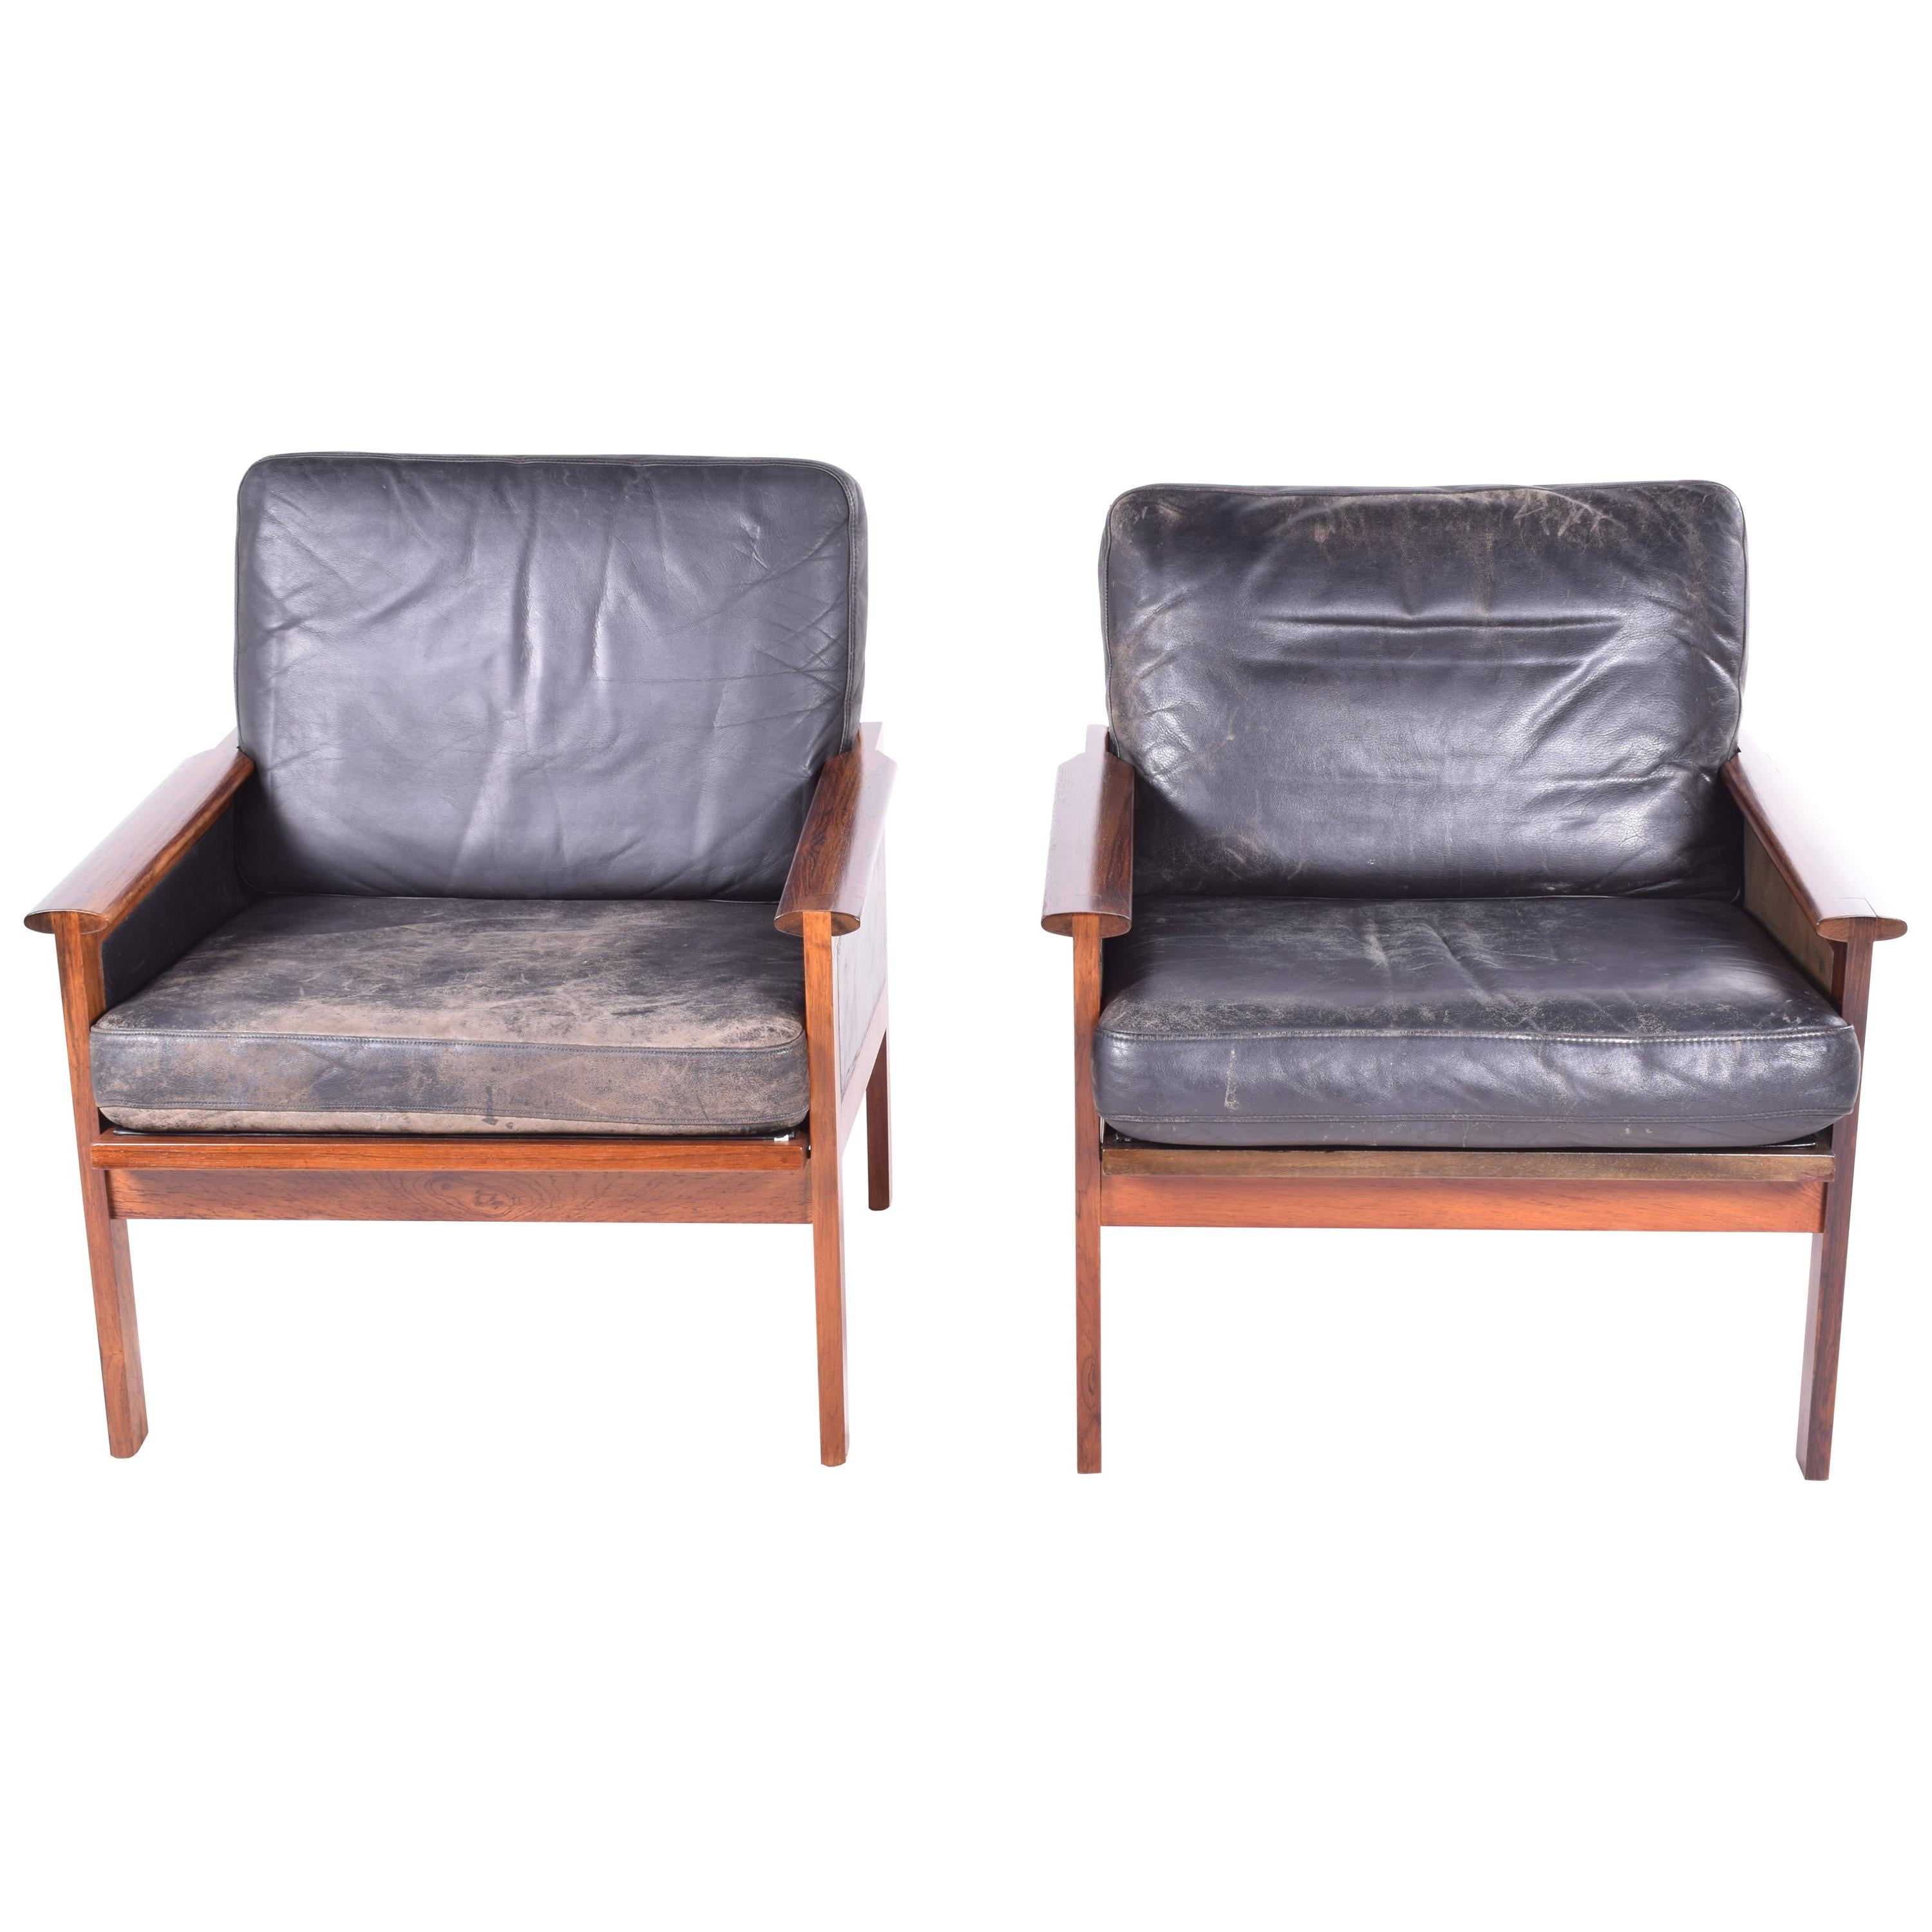 Rosewood Capella Series Armchairs by Illum Wikkelsø for Niels Eilersen